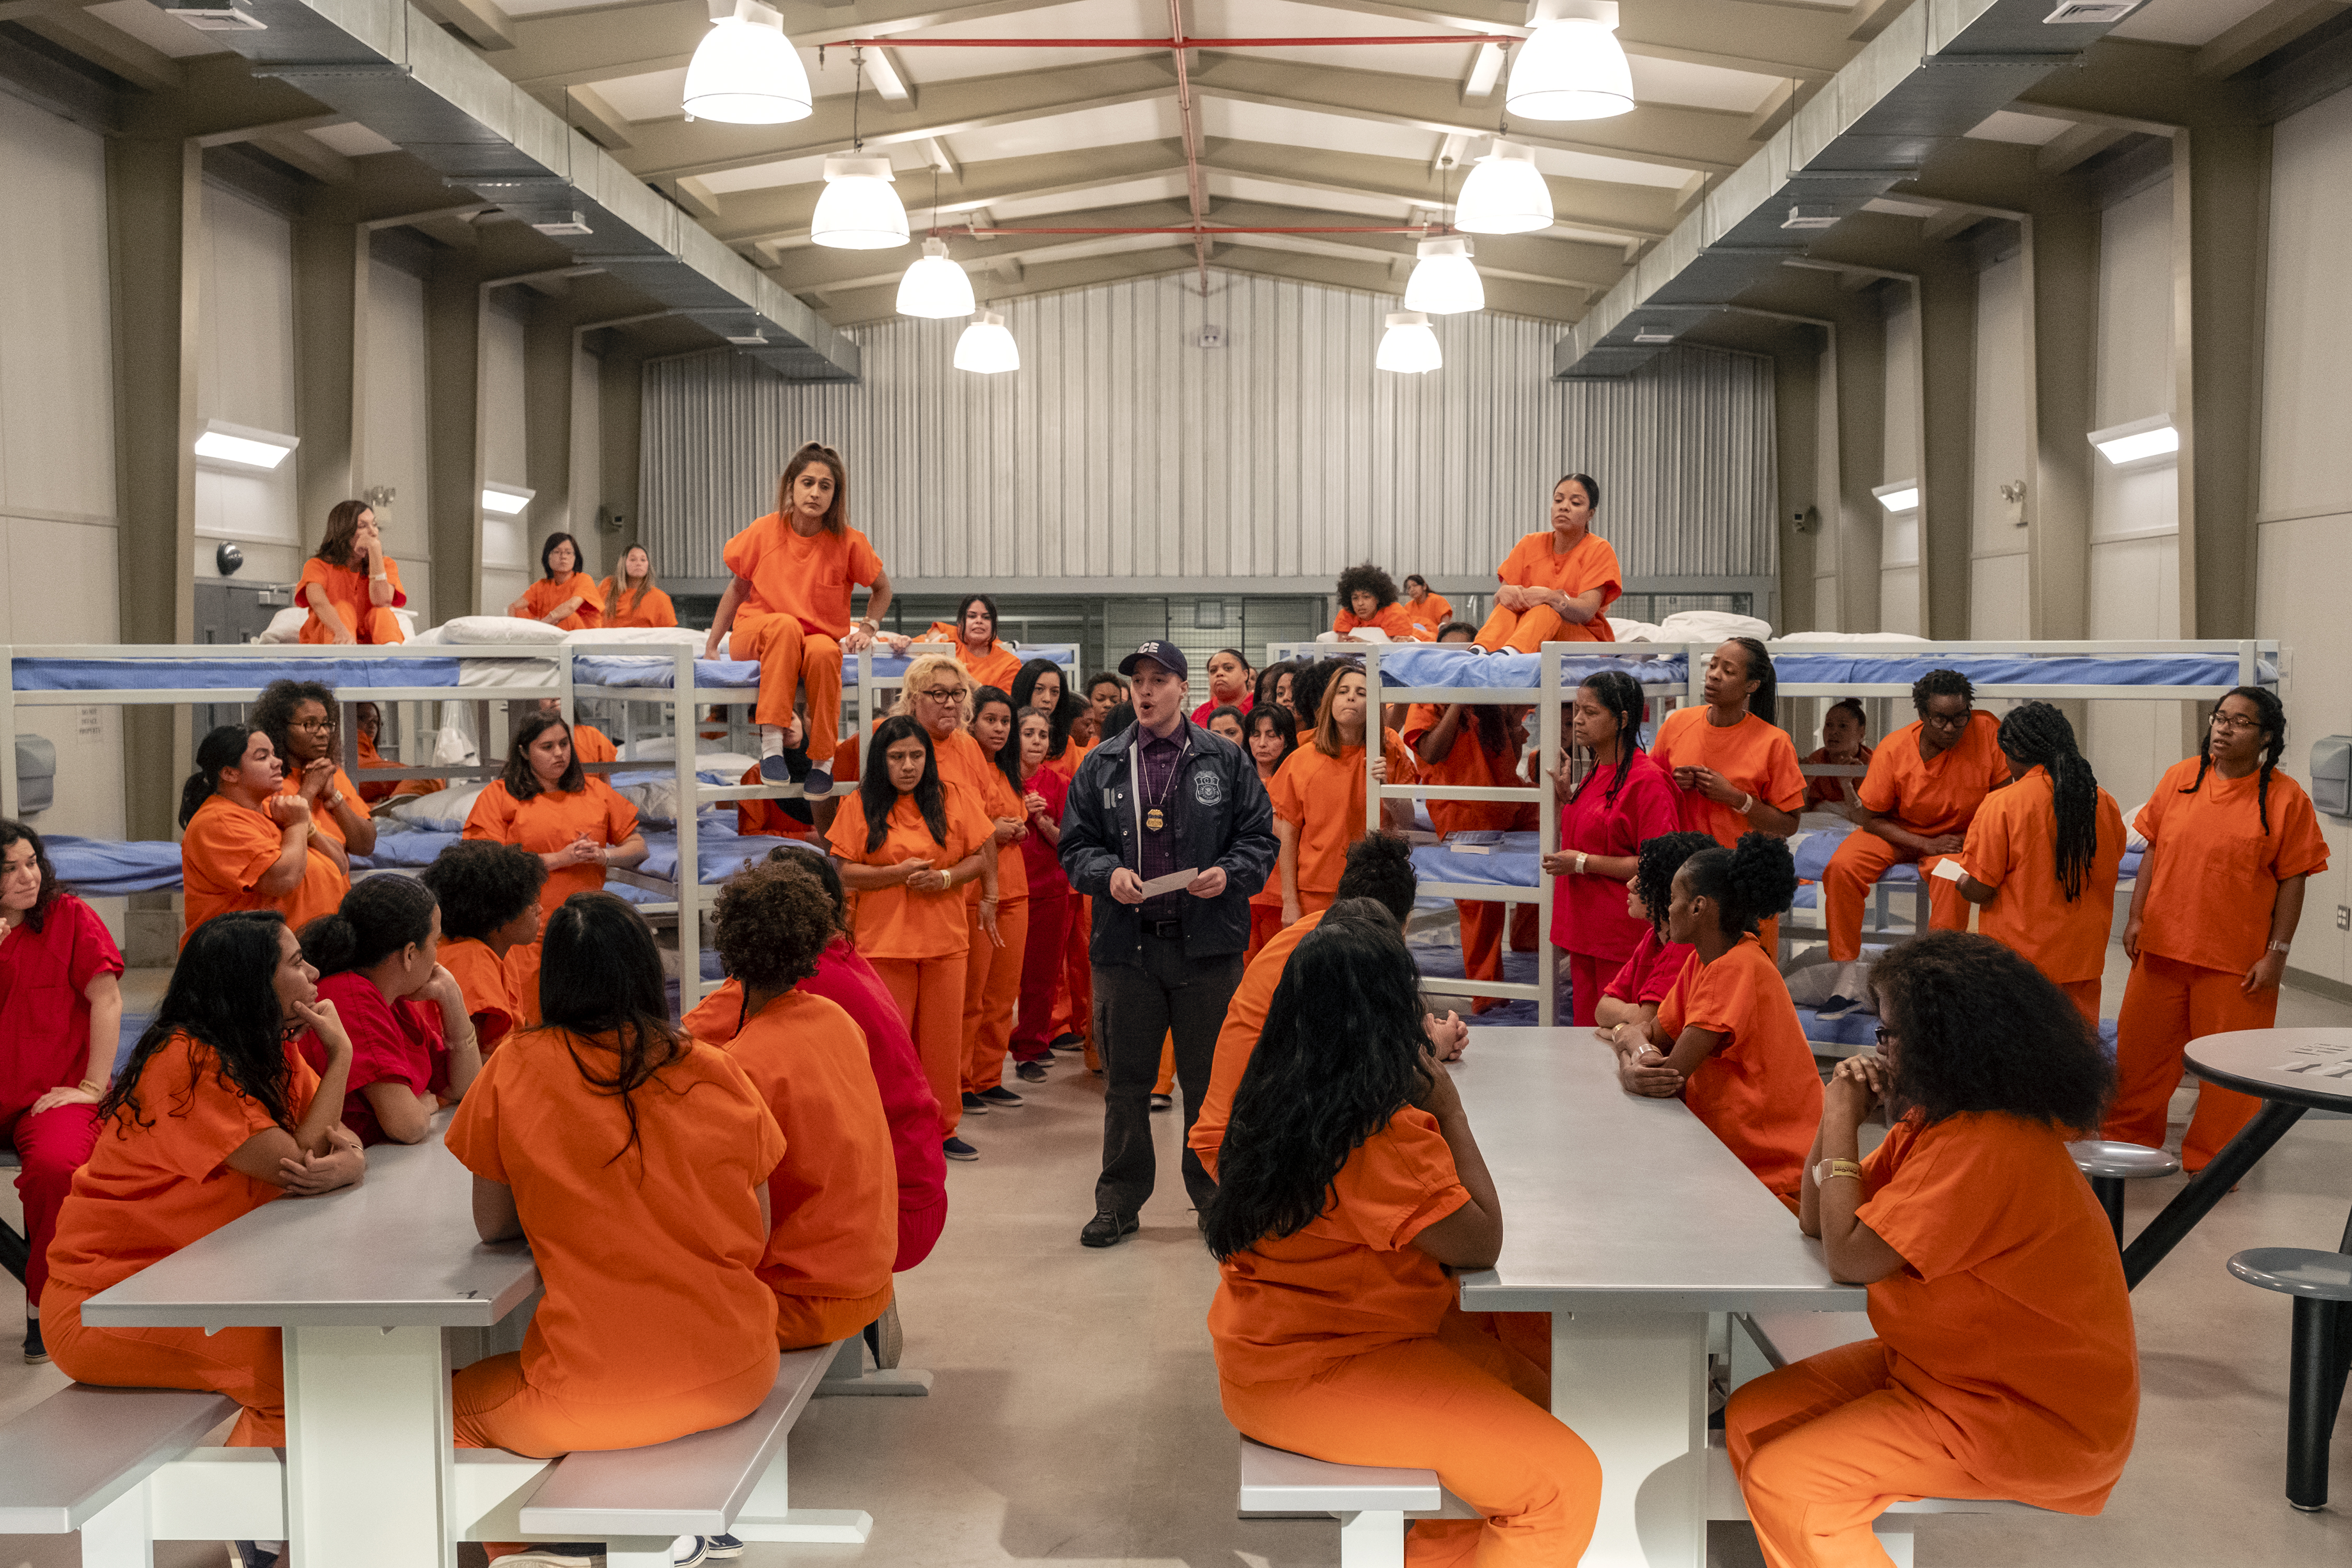 Inmates and a guard inside an ICE detention facility recreated for Orange Is The New Black.